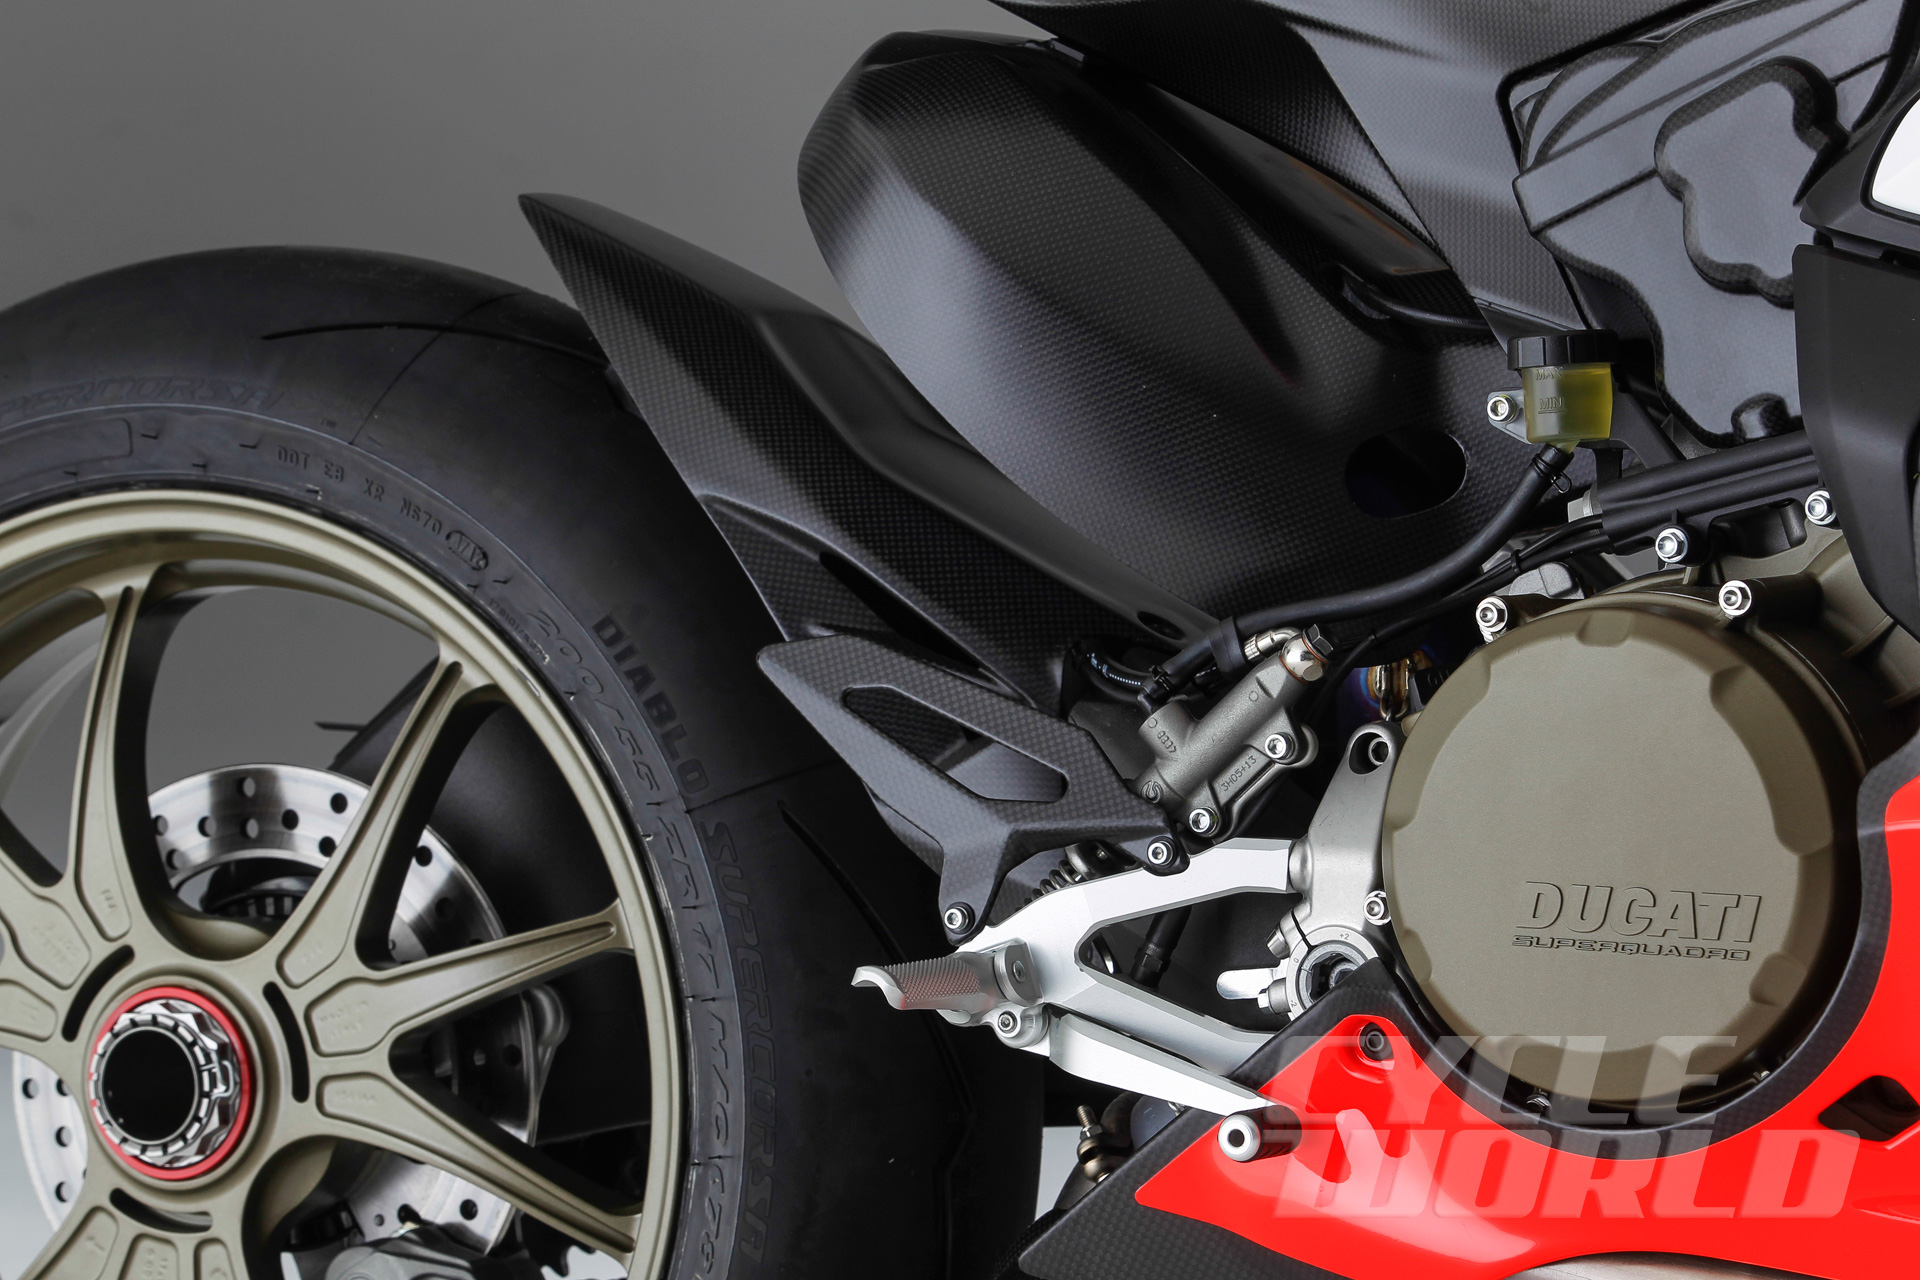 Ducati-Superleggera-detail-296.jpg